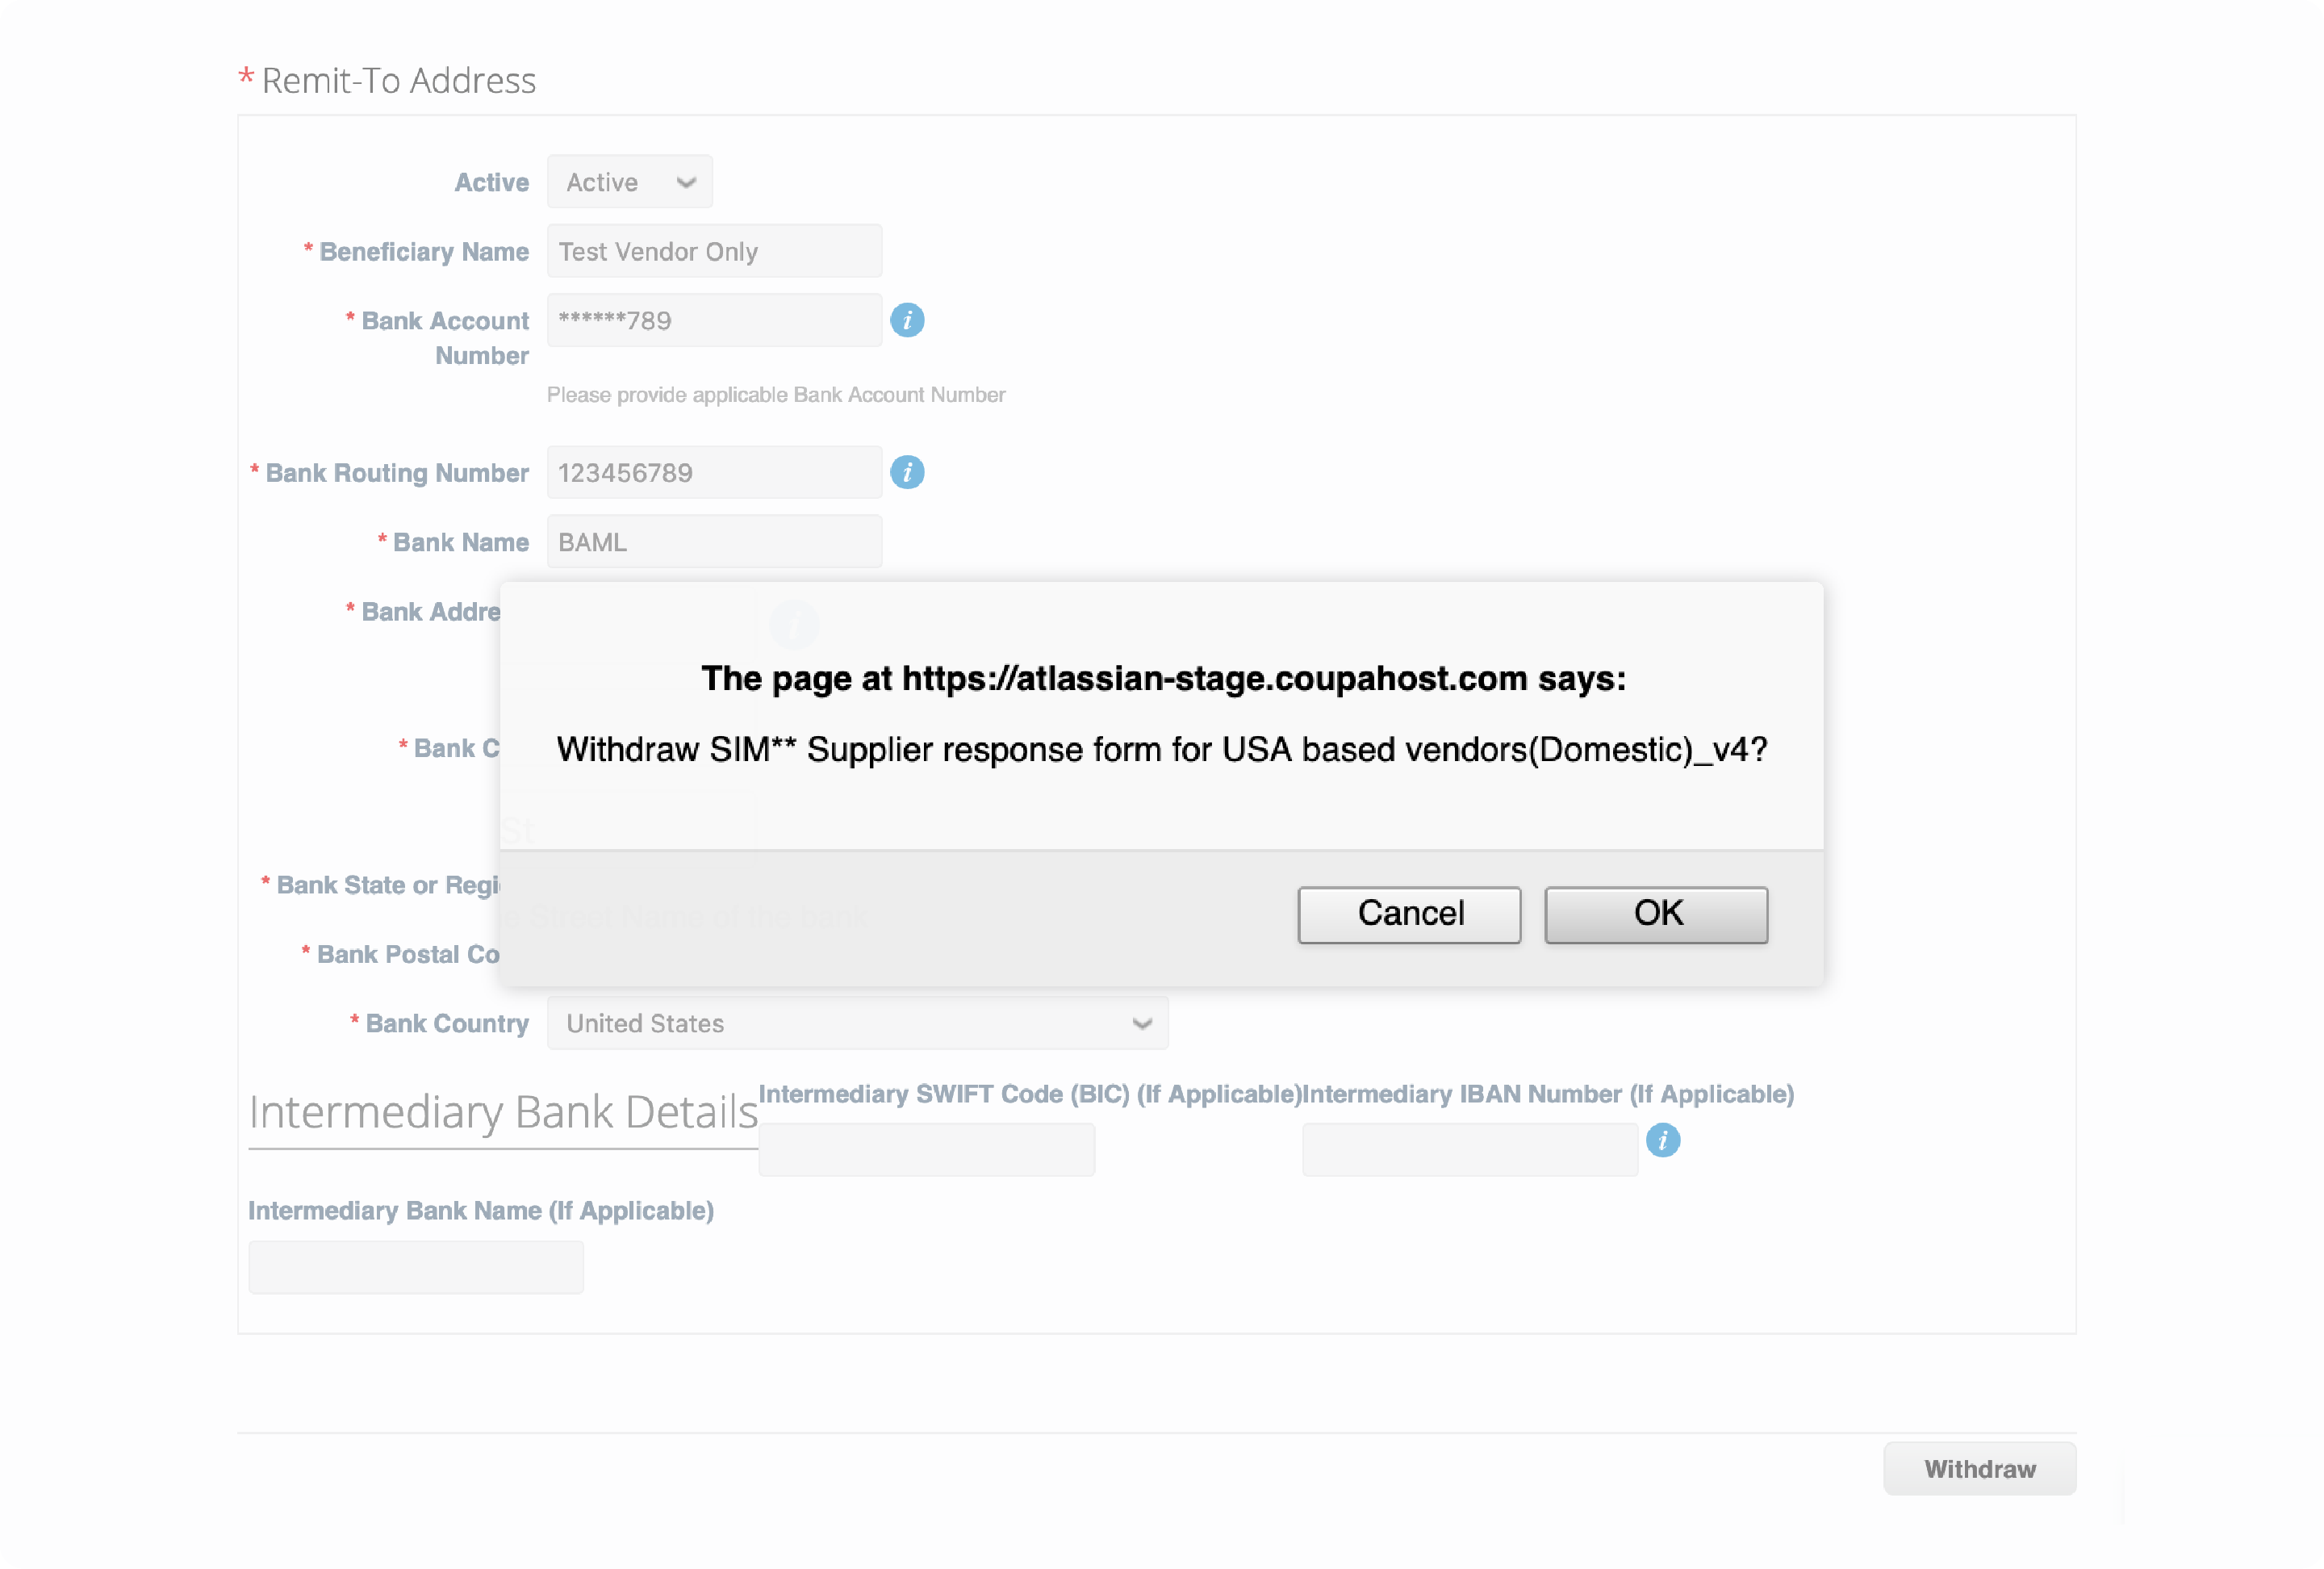 Pop-up box: The page at https://atlassian-stage.coupahost.com says: Withdraw SIM** Supplier response form for USA based vendors(Domestic)_v4?